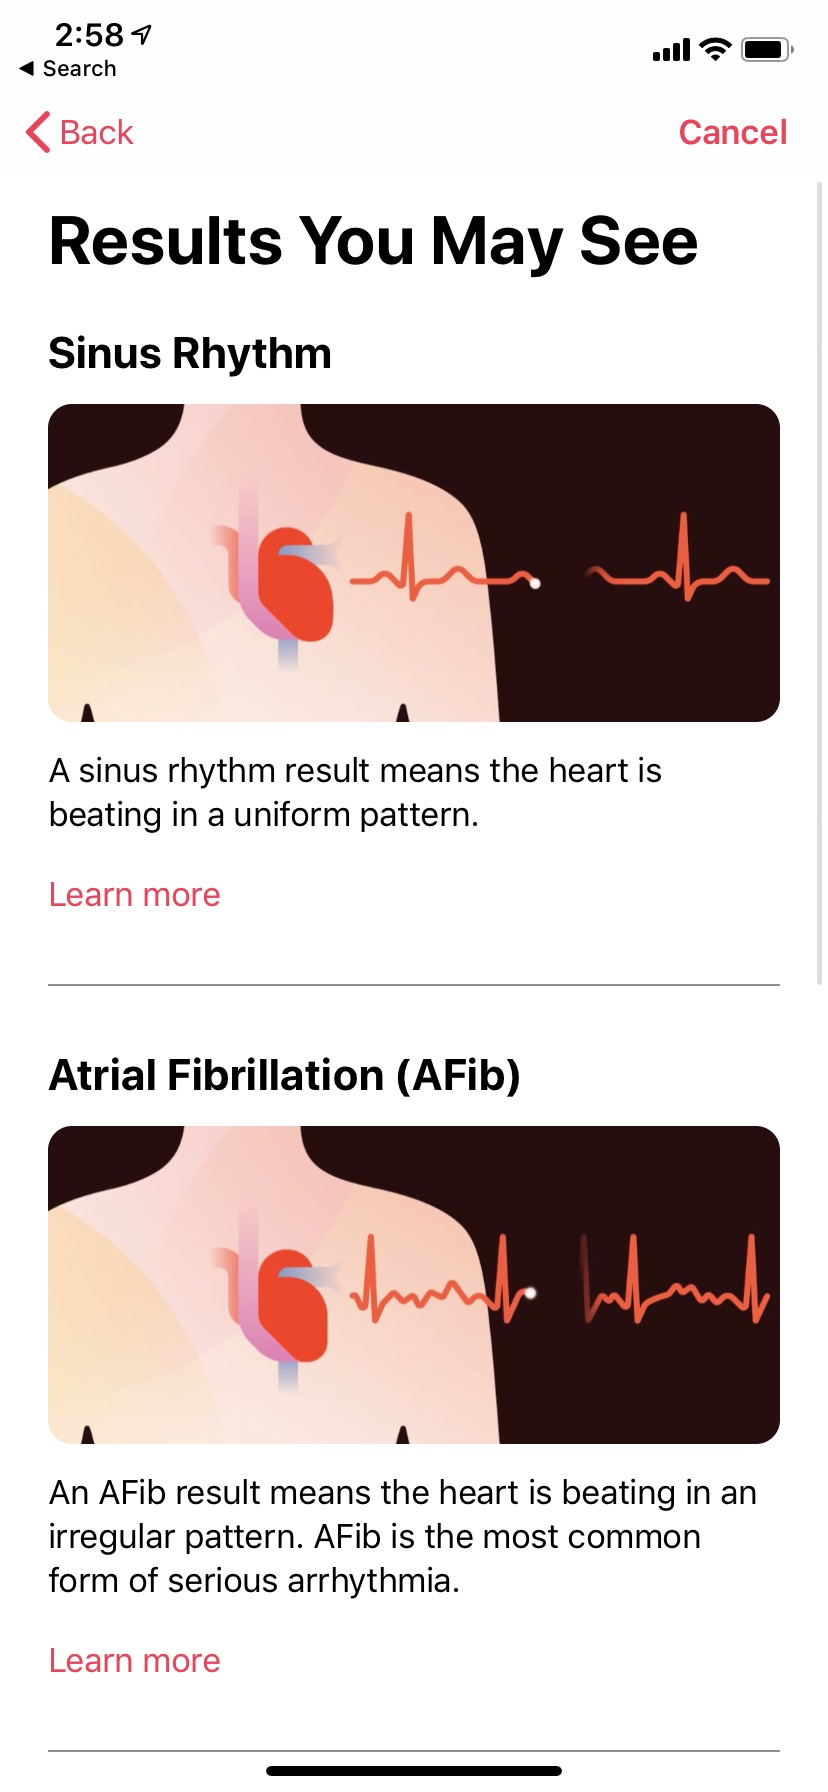 Apple Watch electrocardiogram and irregular heart rate features are